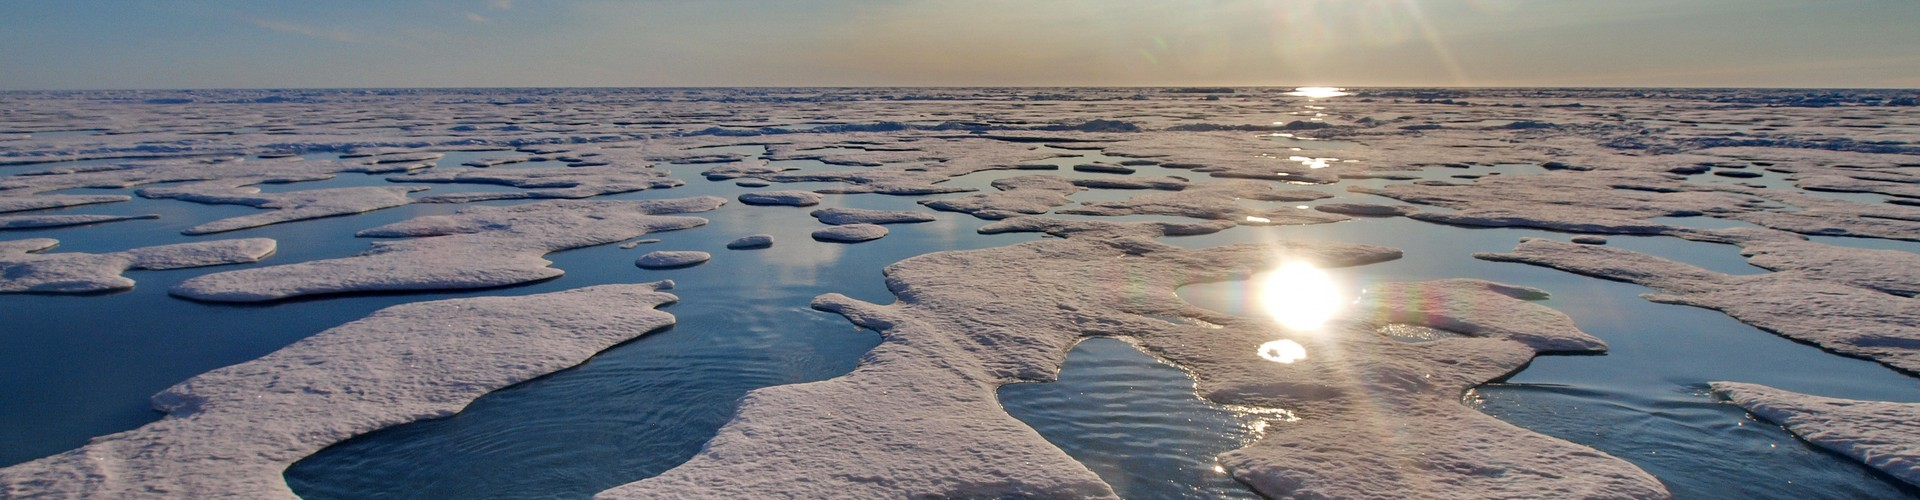 Ponds of melted freshwater (snow) on top of sea ice in the Arctic in summer. (Credit: Michael Tjernström, via Imaggeo)